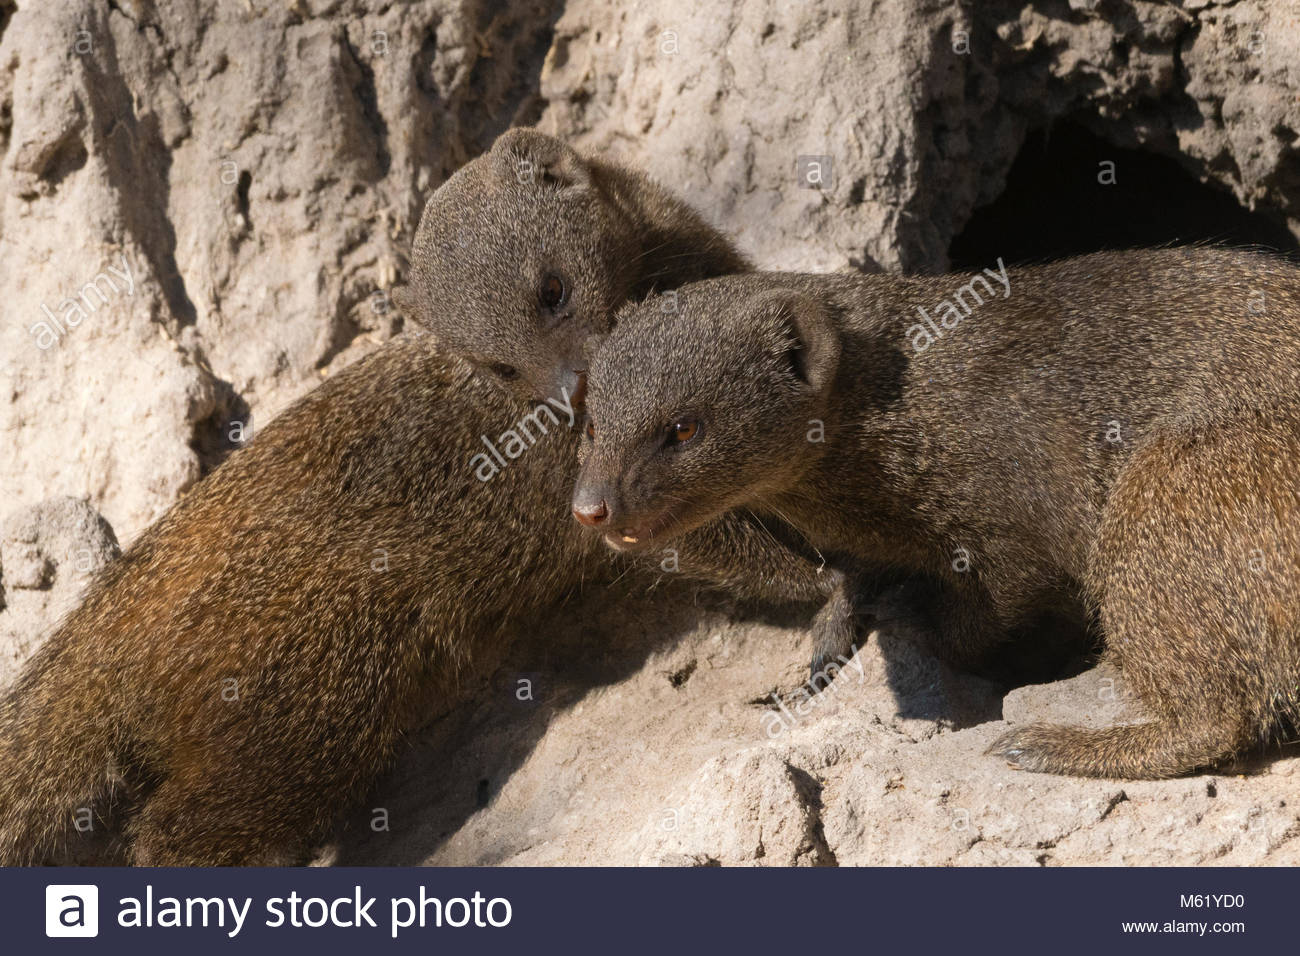 Two dwarf mongooses, Helogale parvula, on a termite mound. - Stock Image